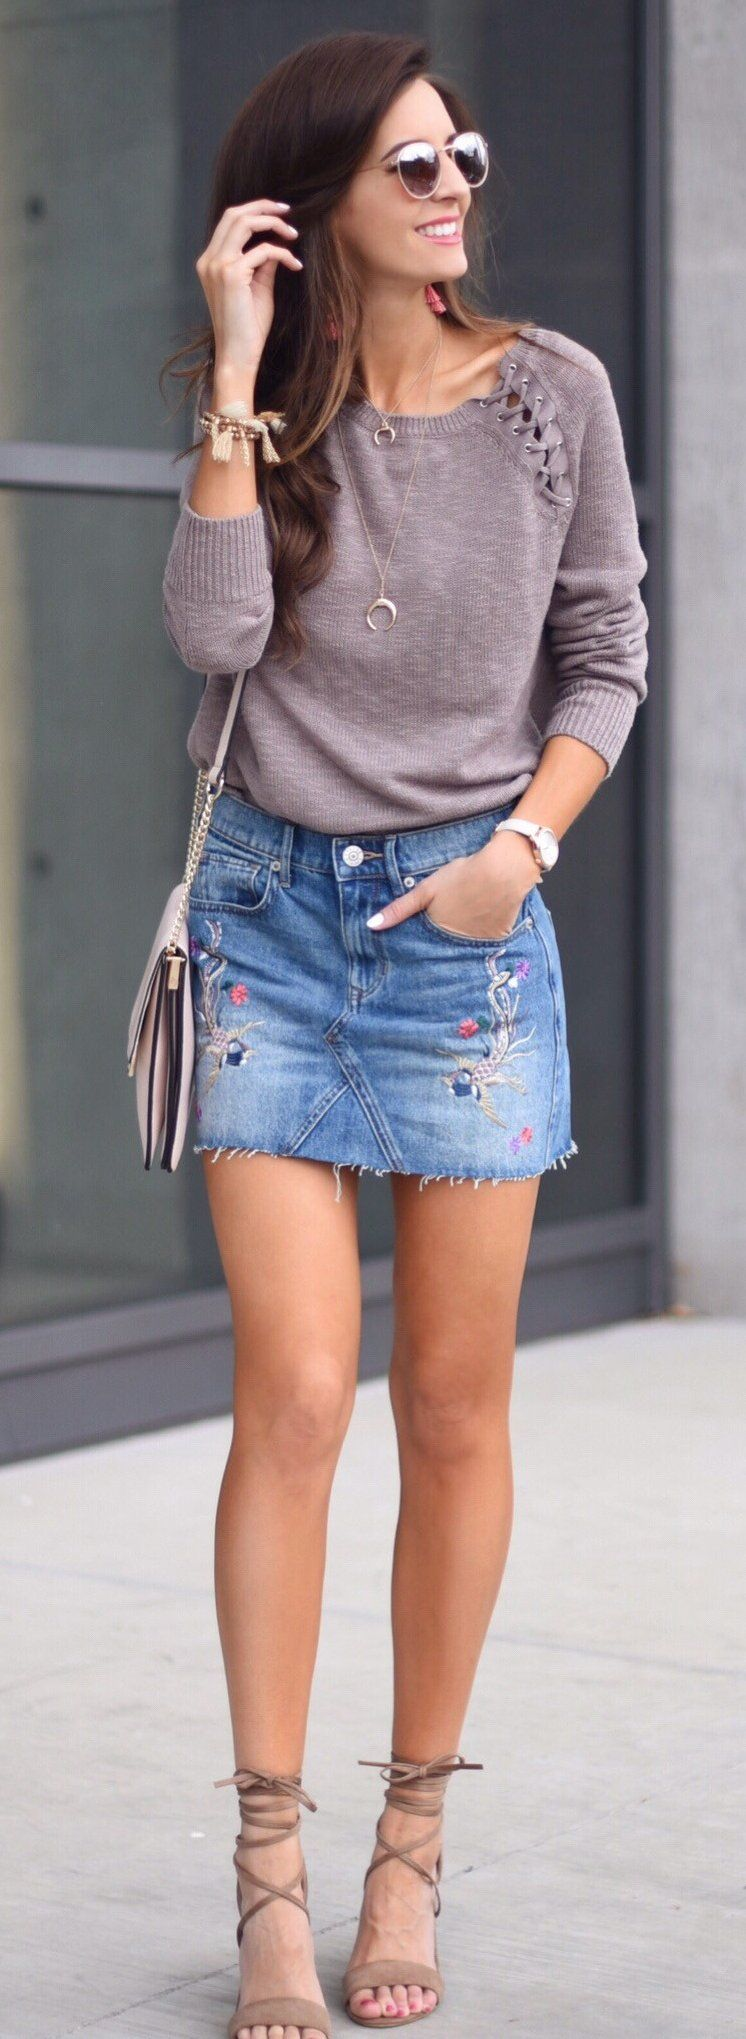 11+ Fabulous Spring Outfits To Copy Asap  Skirt outfits fall